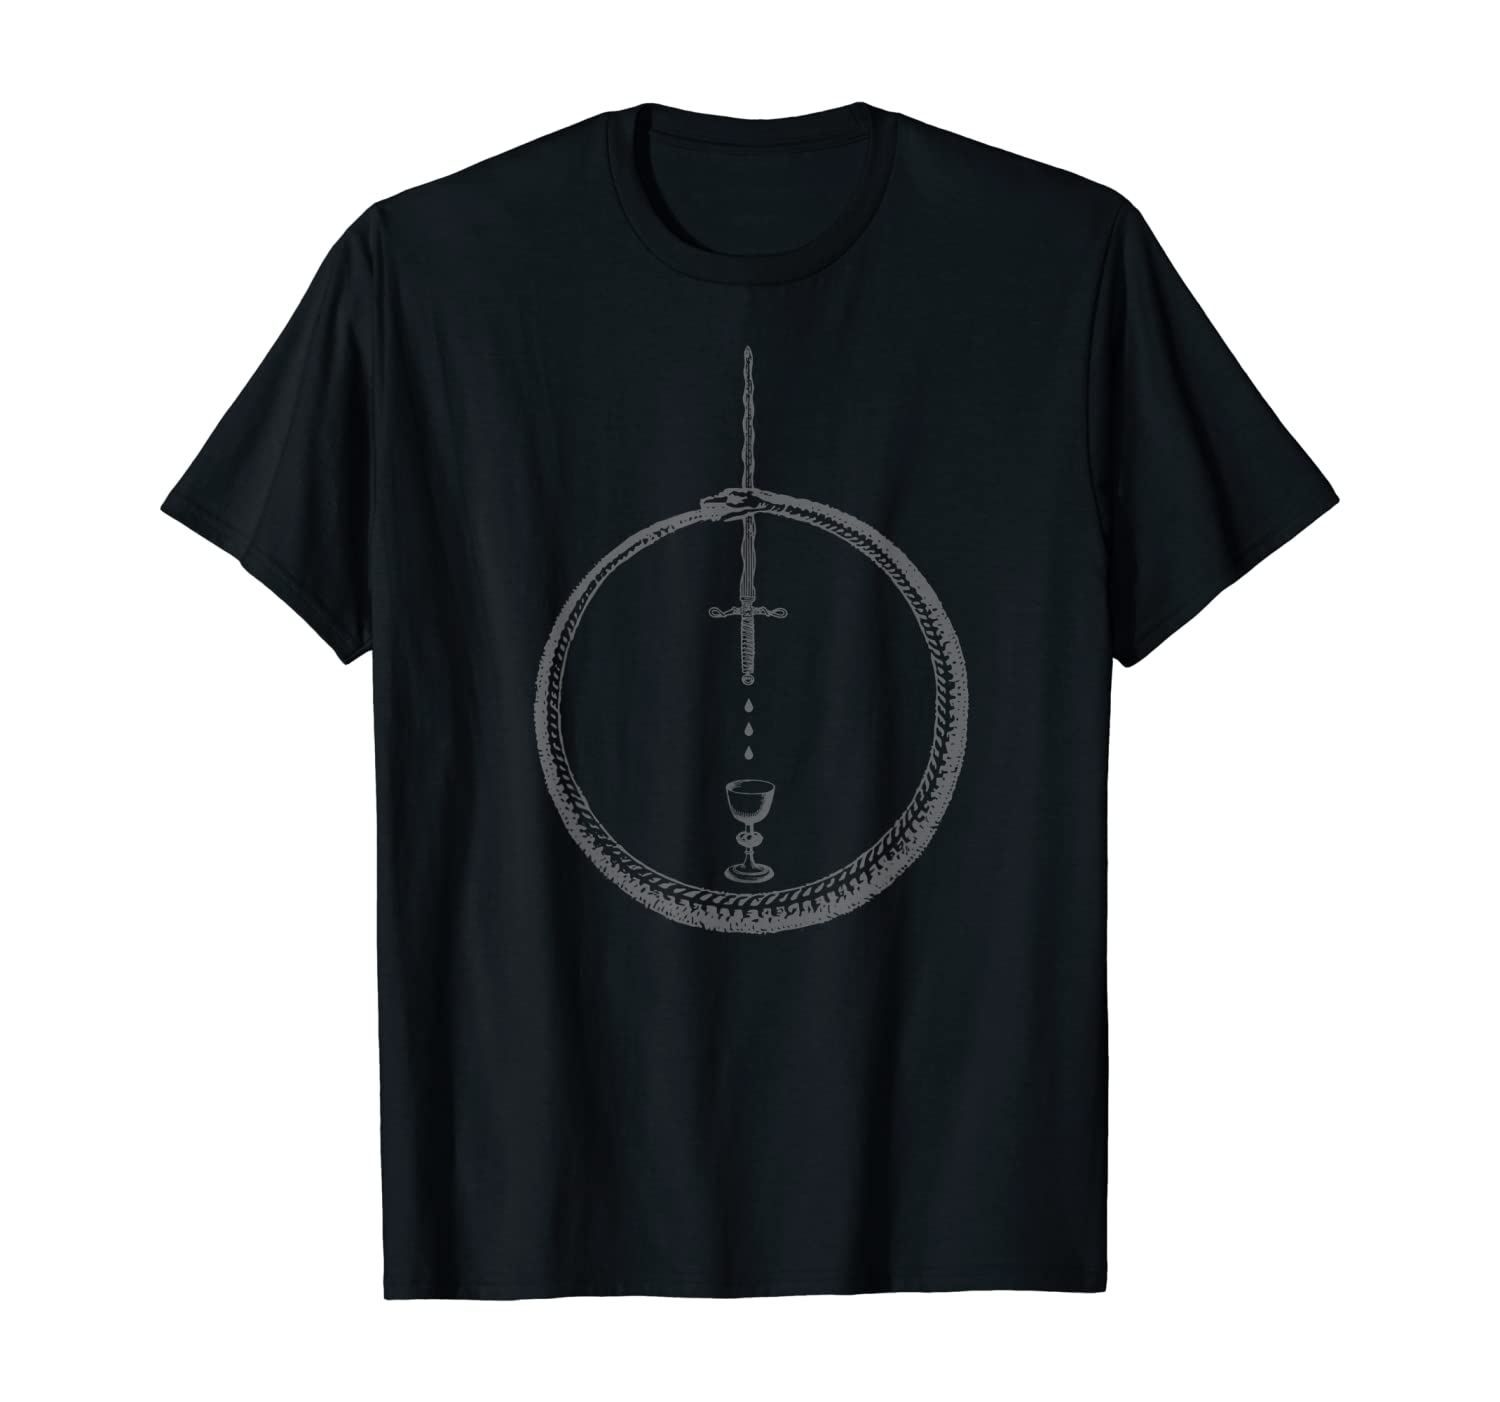 OUROBOROS - Alchemy Symbol Black - Occult Sacred Geometry T-Shirt